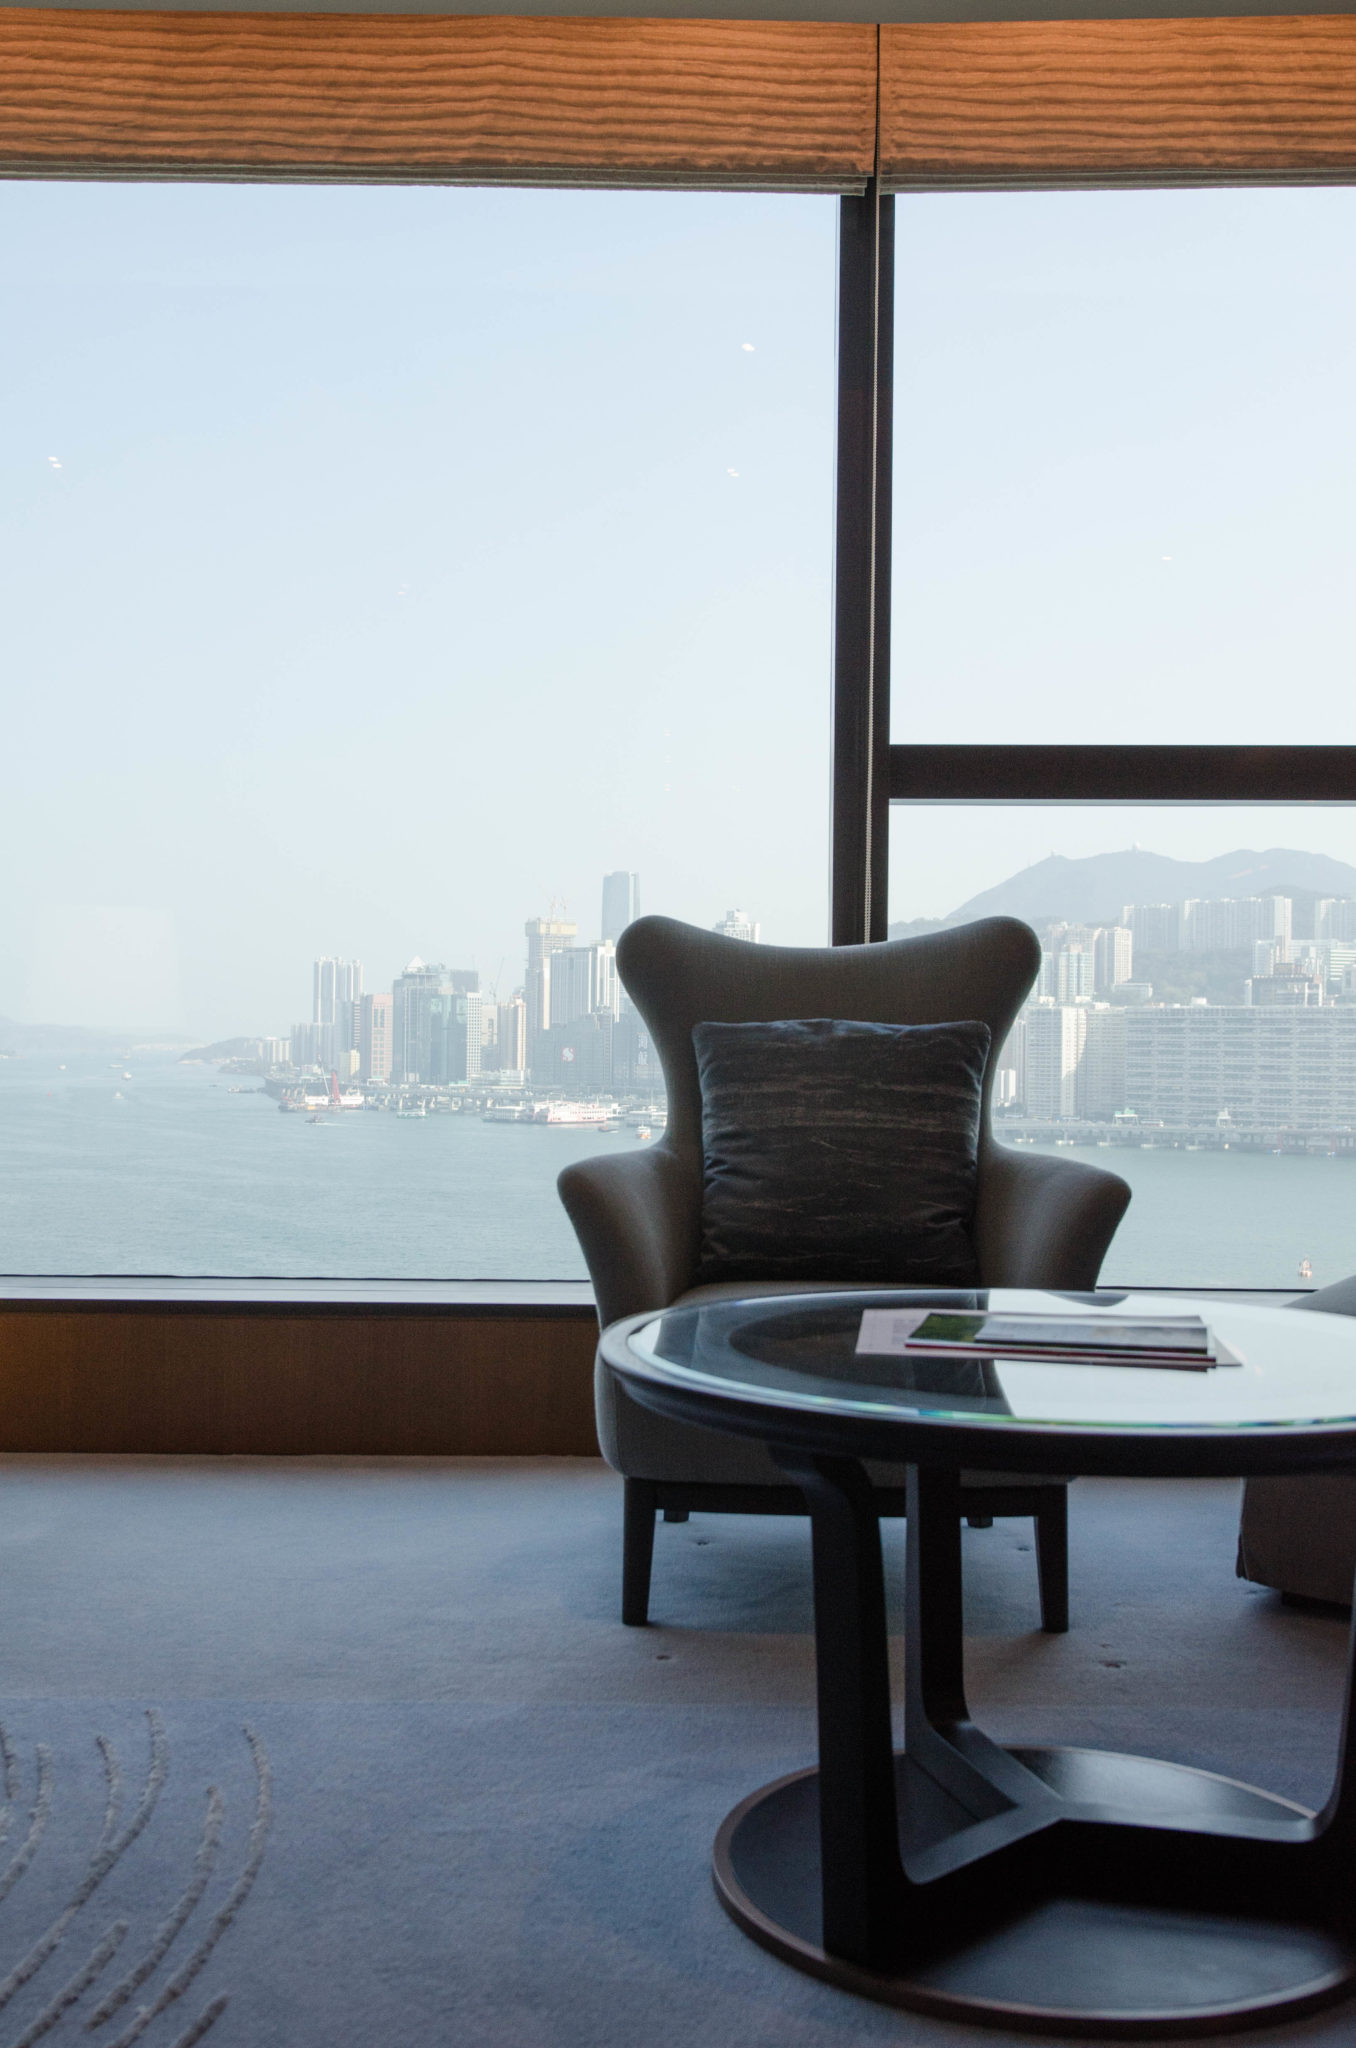 The Kerry Hotel Hong Kong in Hung Hom is designed in a minimalistic way.